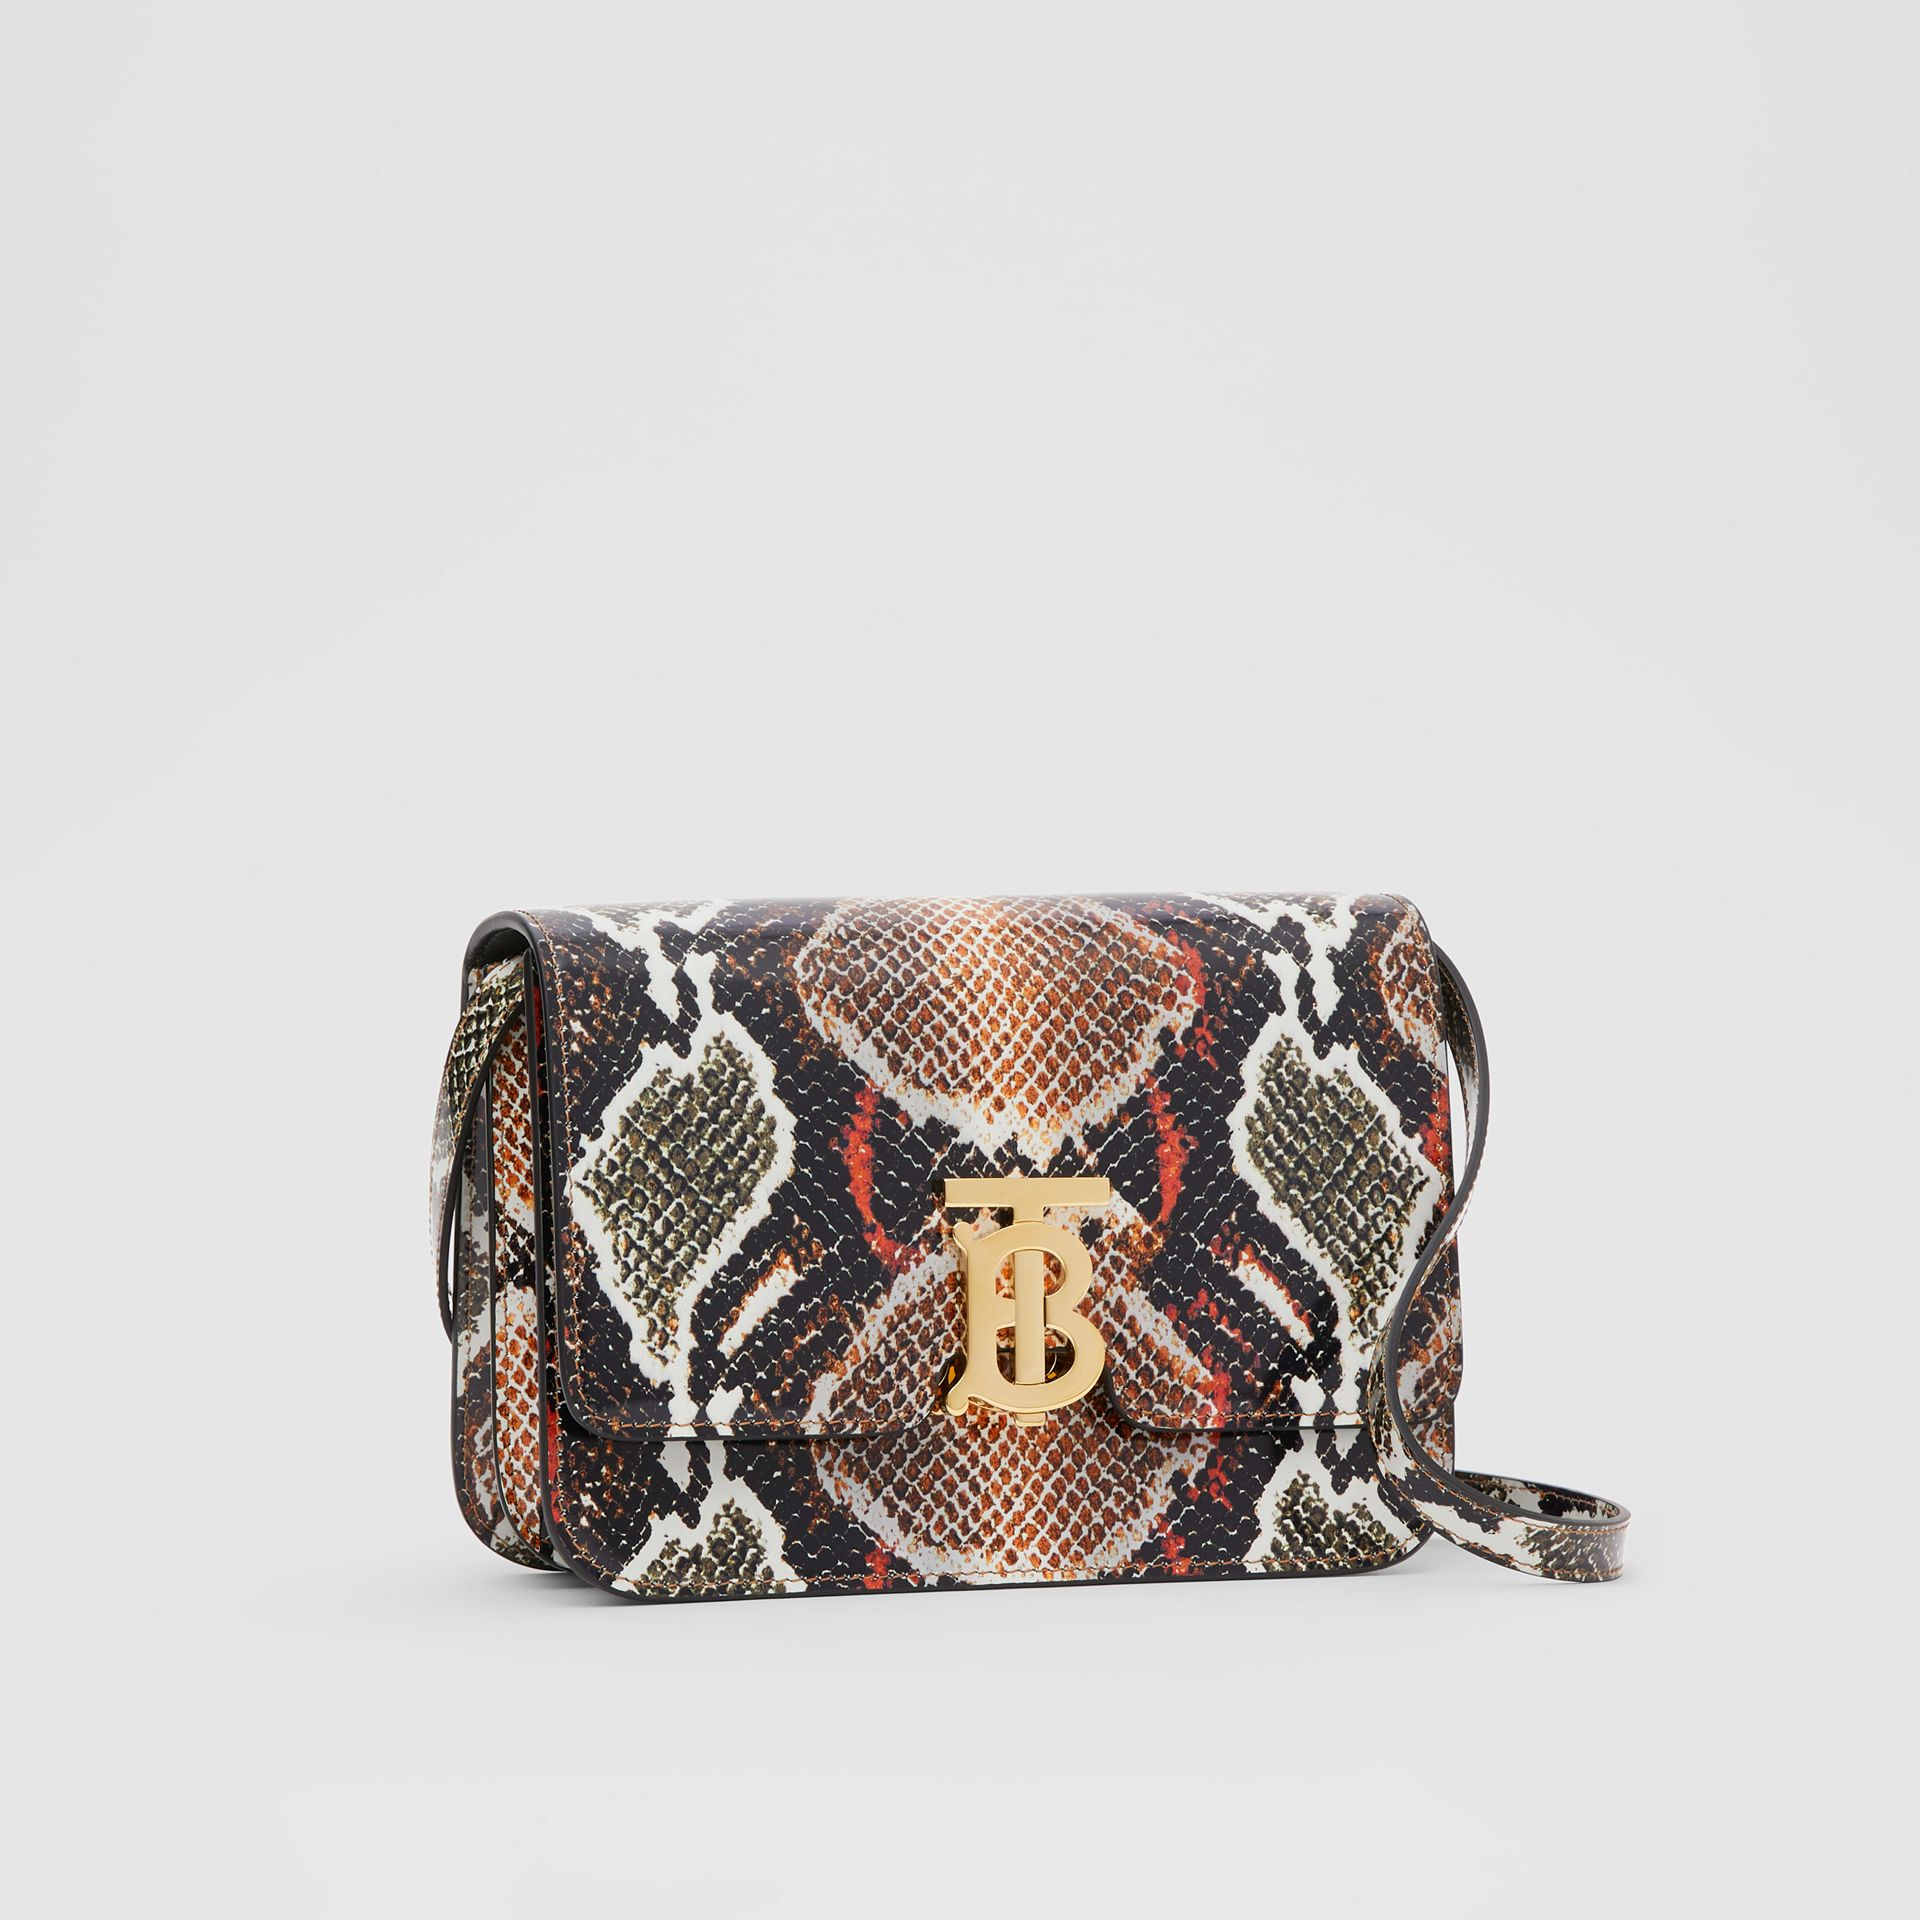 Small Python Print Leather TB Bag in Soft Cocoa - Women | Burberry - gallery image 4